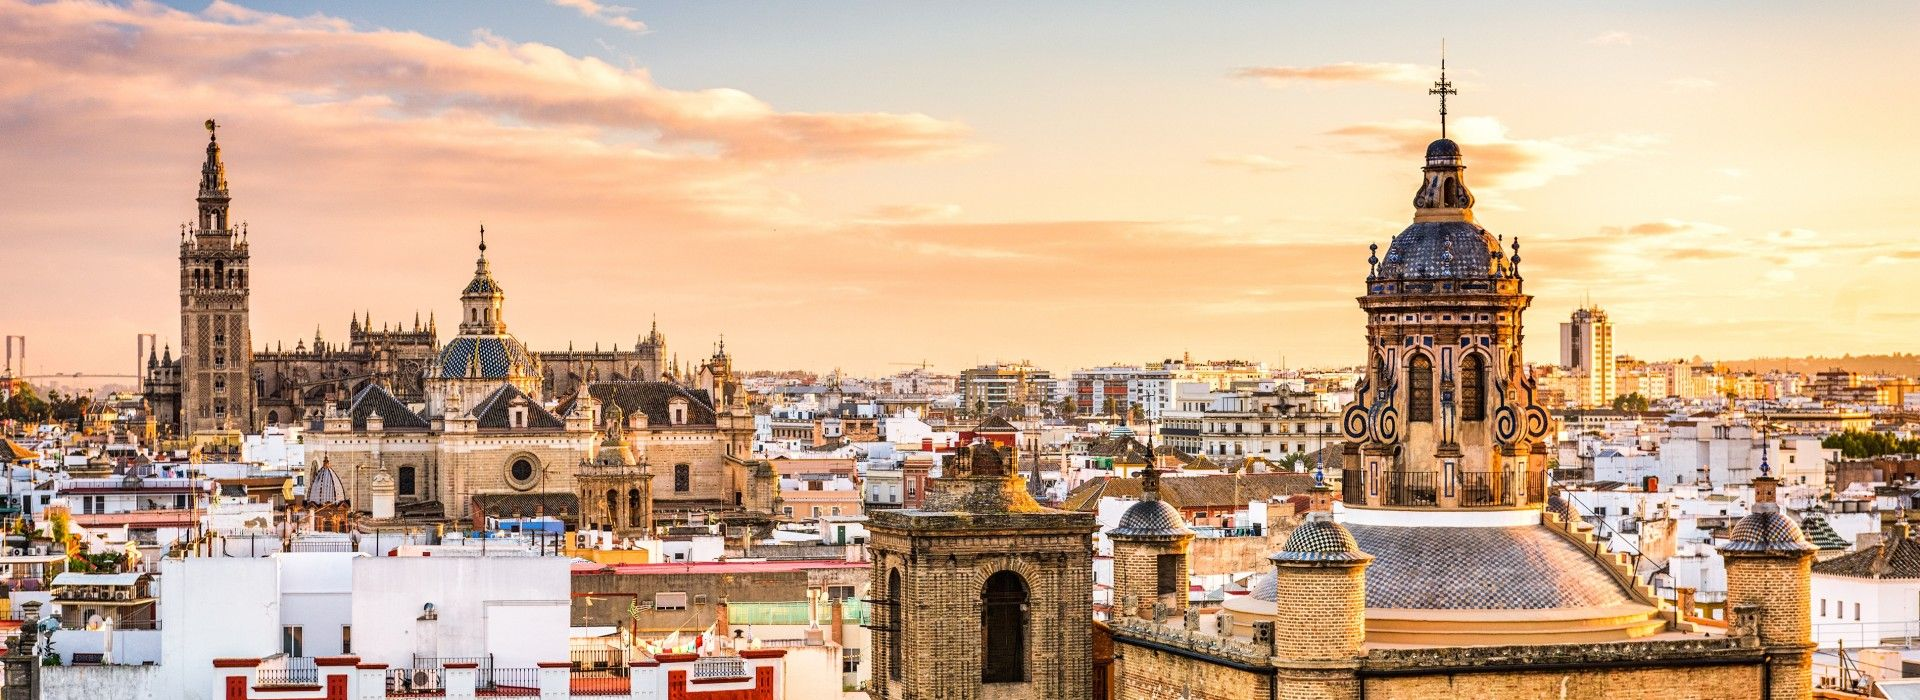 Amazing view of Seville Skyline